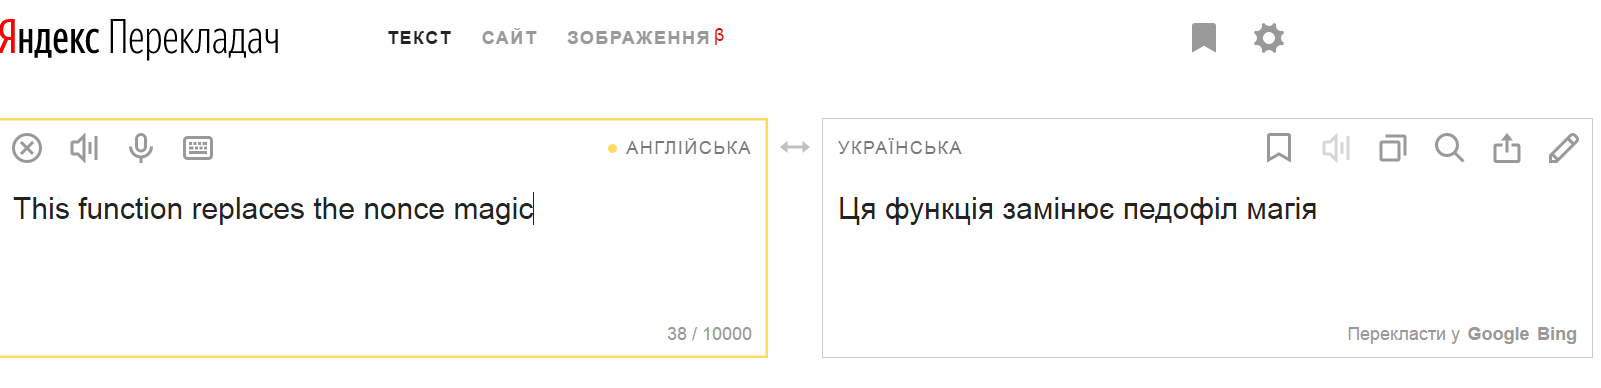 http://replace.org.ua/extensions/om_images/img/58ac97619b952/Untitled.png